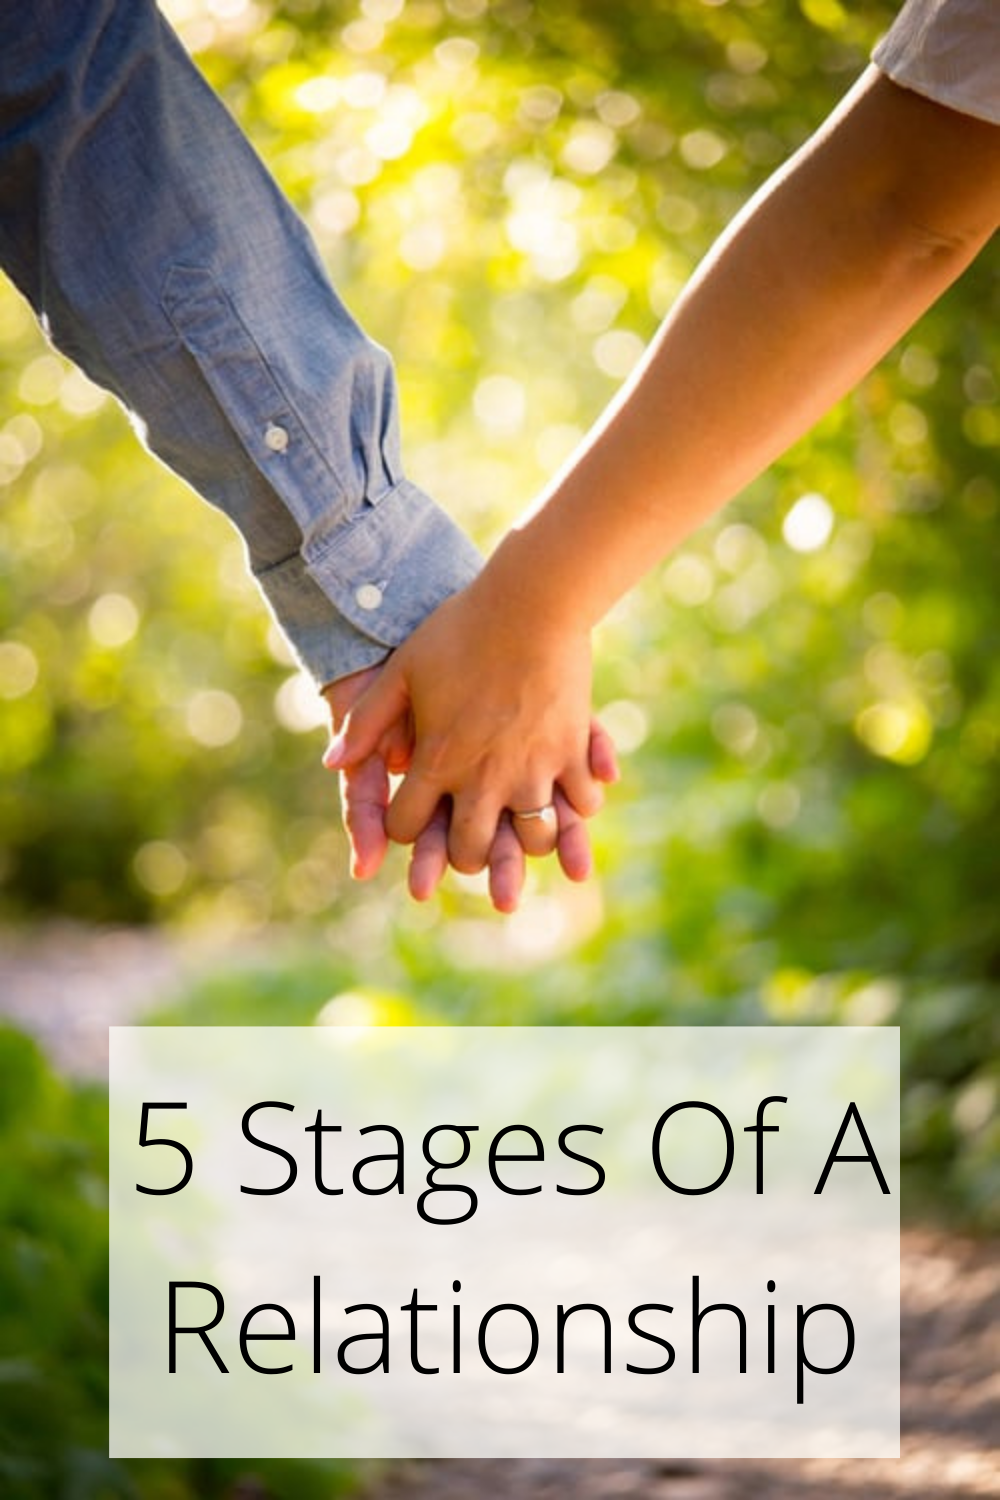 Here's 5 stages of a relationship that you should probably know about.